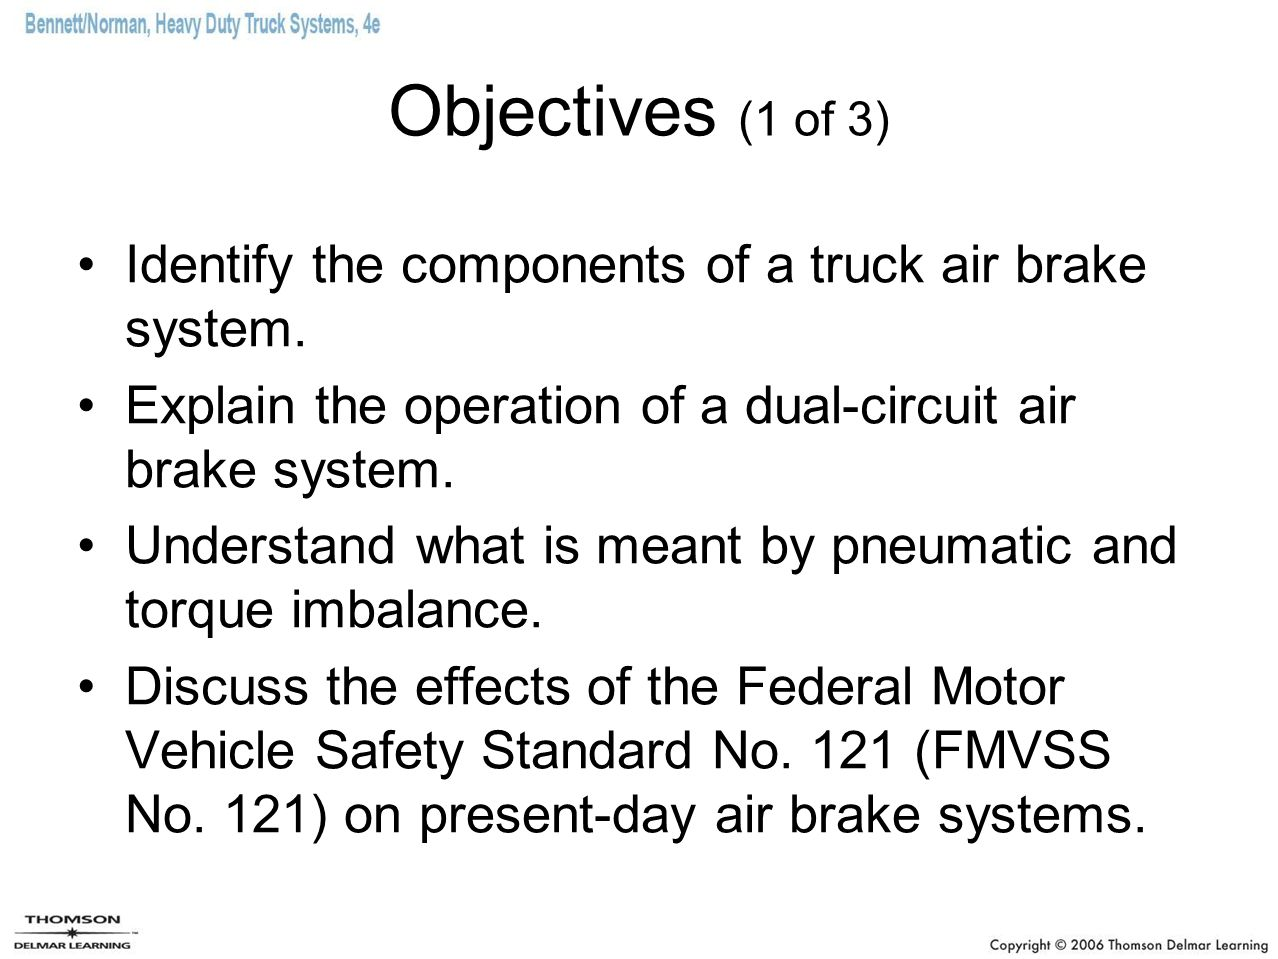 Chapter 28 Truck Brake Systems Ppt Video Online Download Car System Diagram Electropneumatic Brakes Objectives 1 Of 3 Identify The Components A Air